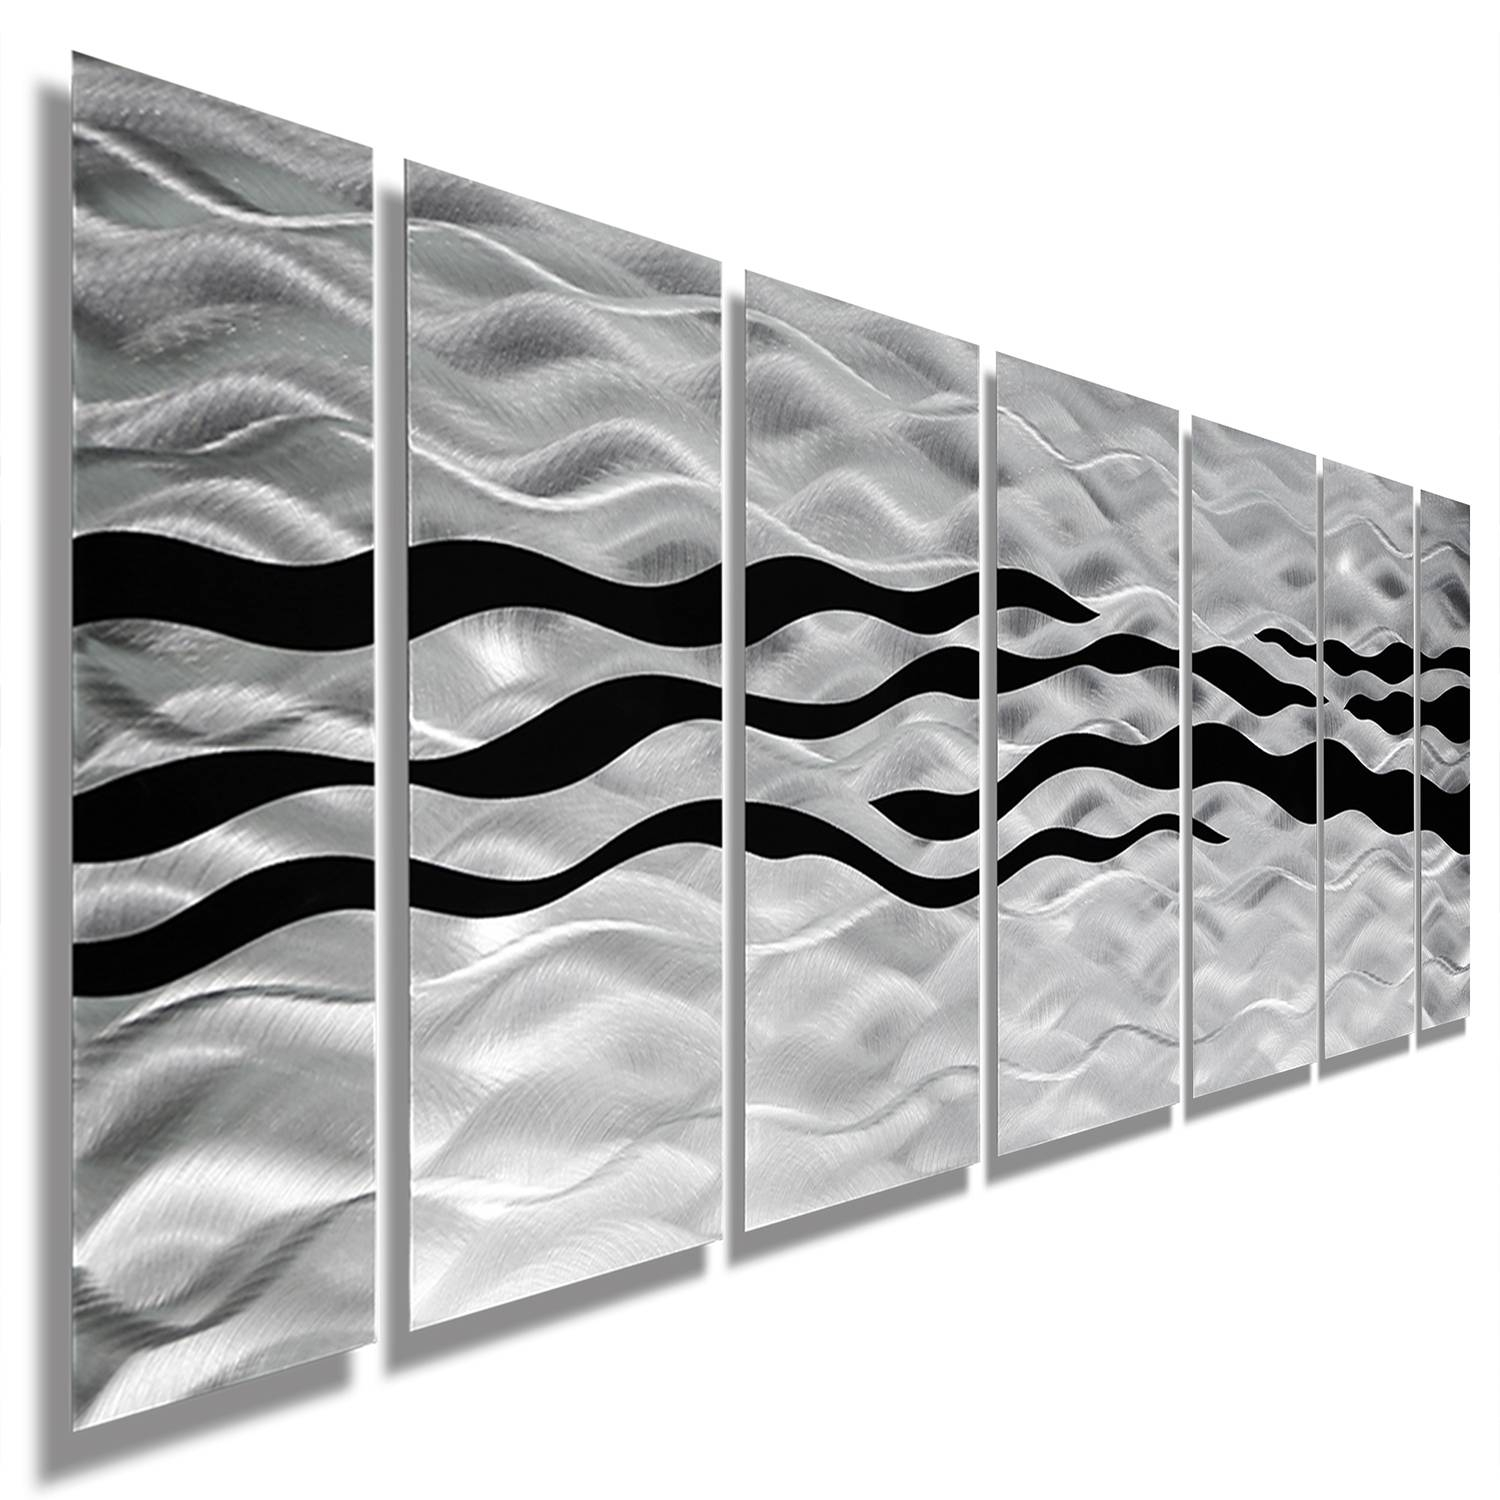 Wild Ways – Silver And Black Modern Metallic Wall Hanging Pertaining To Current Black Silver Wall Art (Gallery 3 of 20)